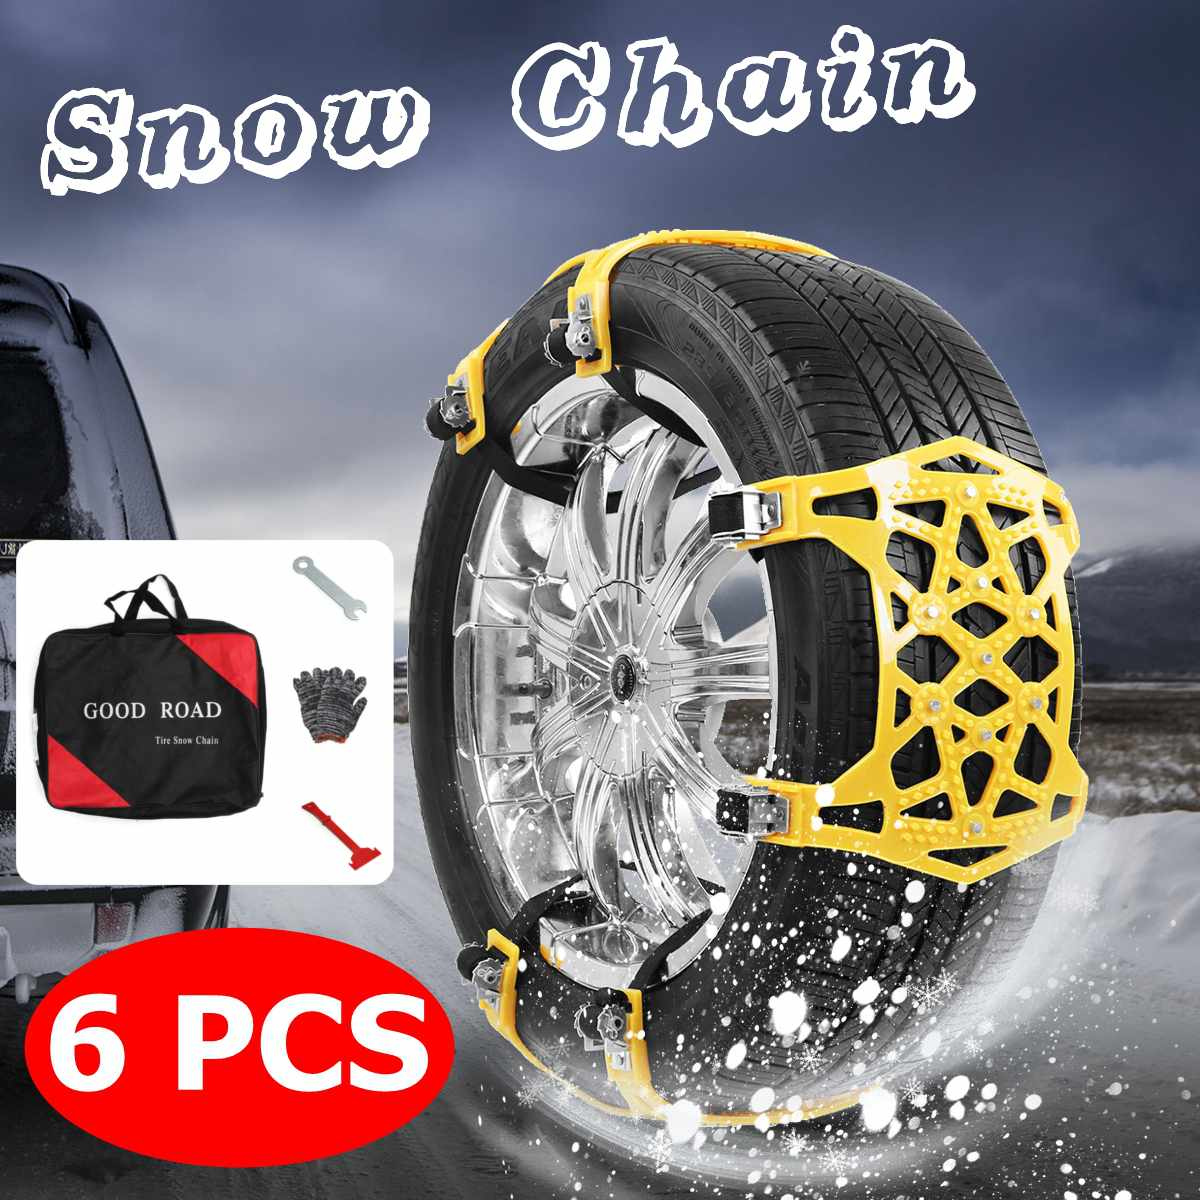 Auto Replacement Parts Back To Search Resultsautomobiles & Motorcycles Shop For Cheap Universal Car Snow Emergency Wheel Tire Non-slip Chain Car Safety Driving Nylon Adjustable Length Off Road Vehicle Suv Truck Matching In Colour